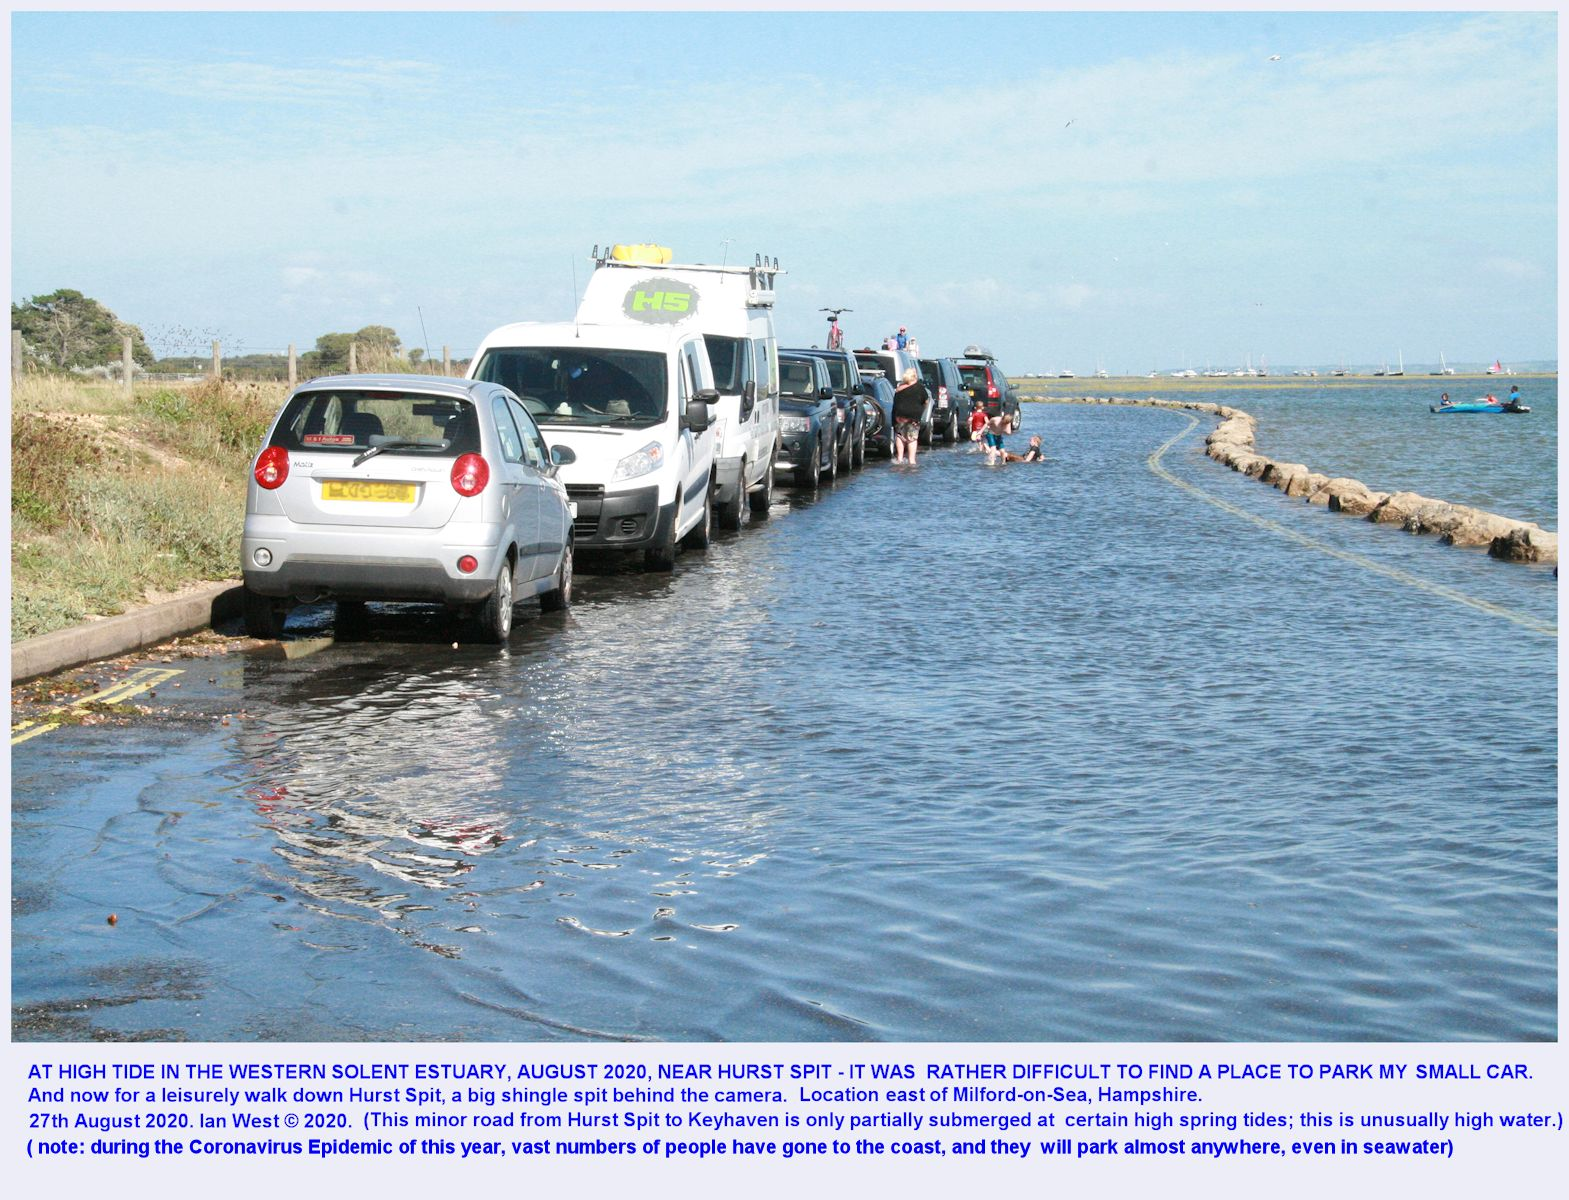 The minor road from Hurst Spit to Keyhaven is seen flooded at a very high tide, with vehicles parking in the shallow sea water, August 2020, Ian West